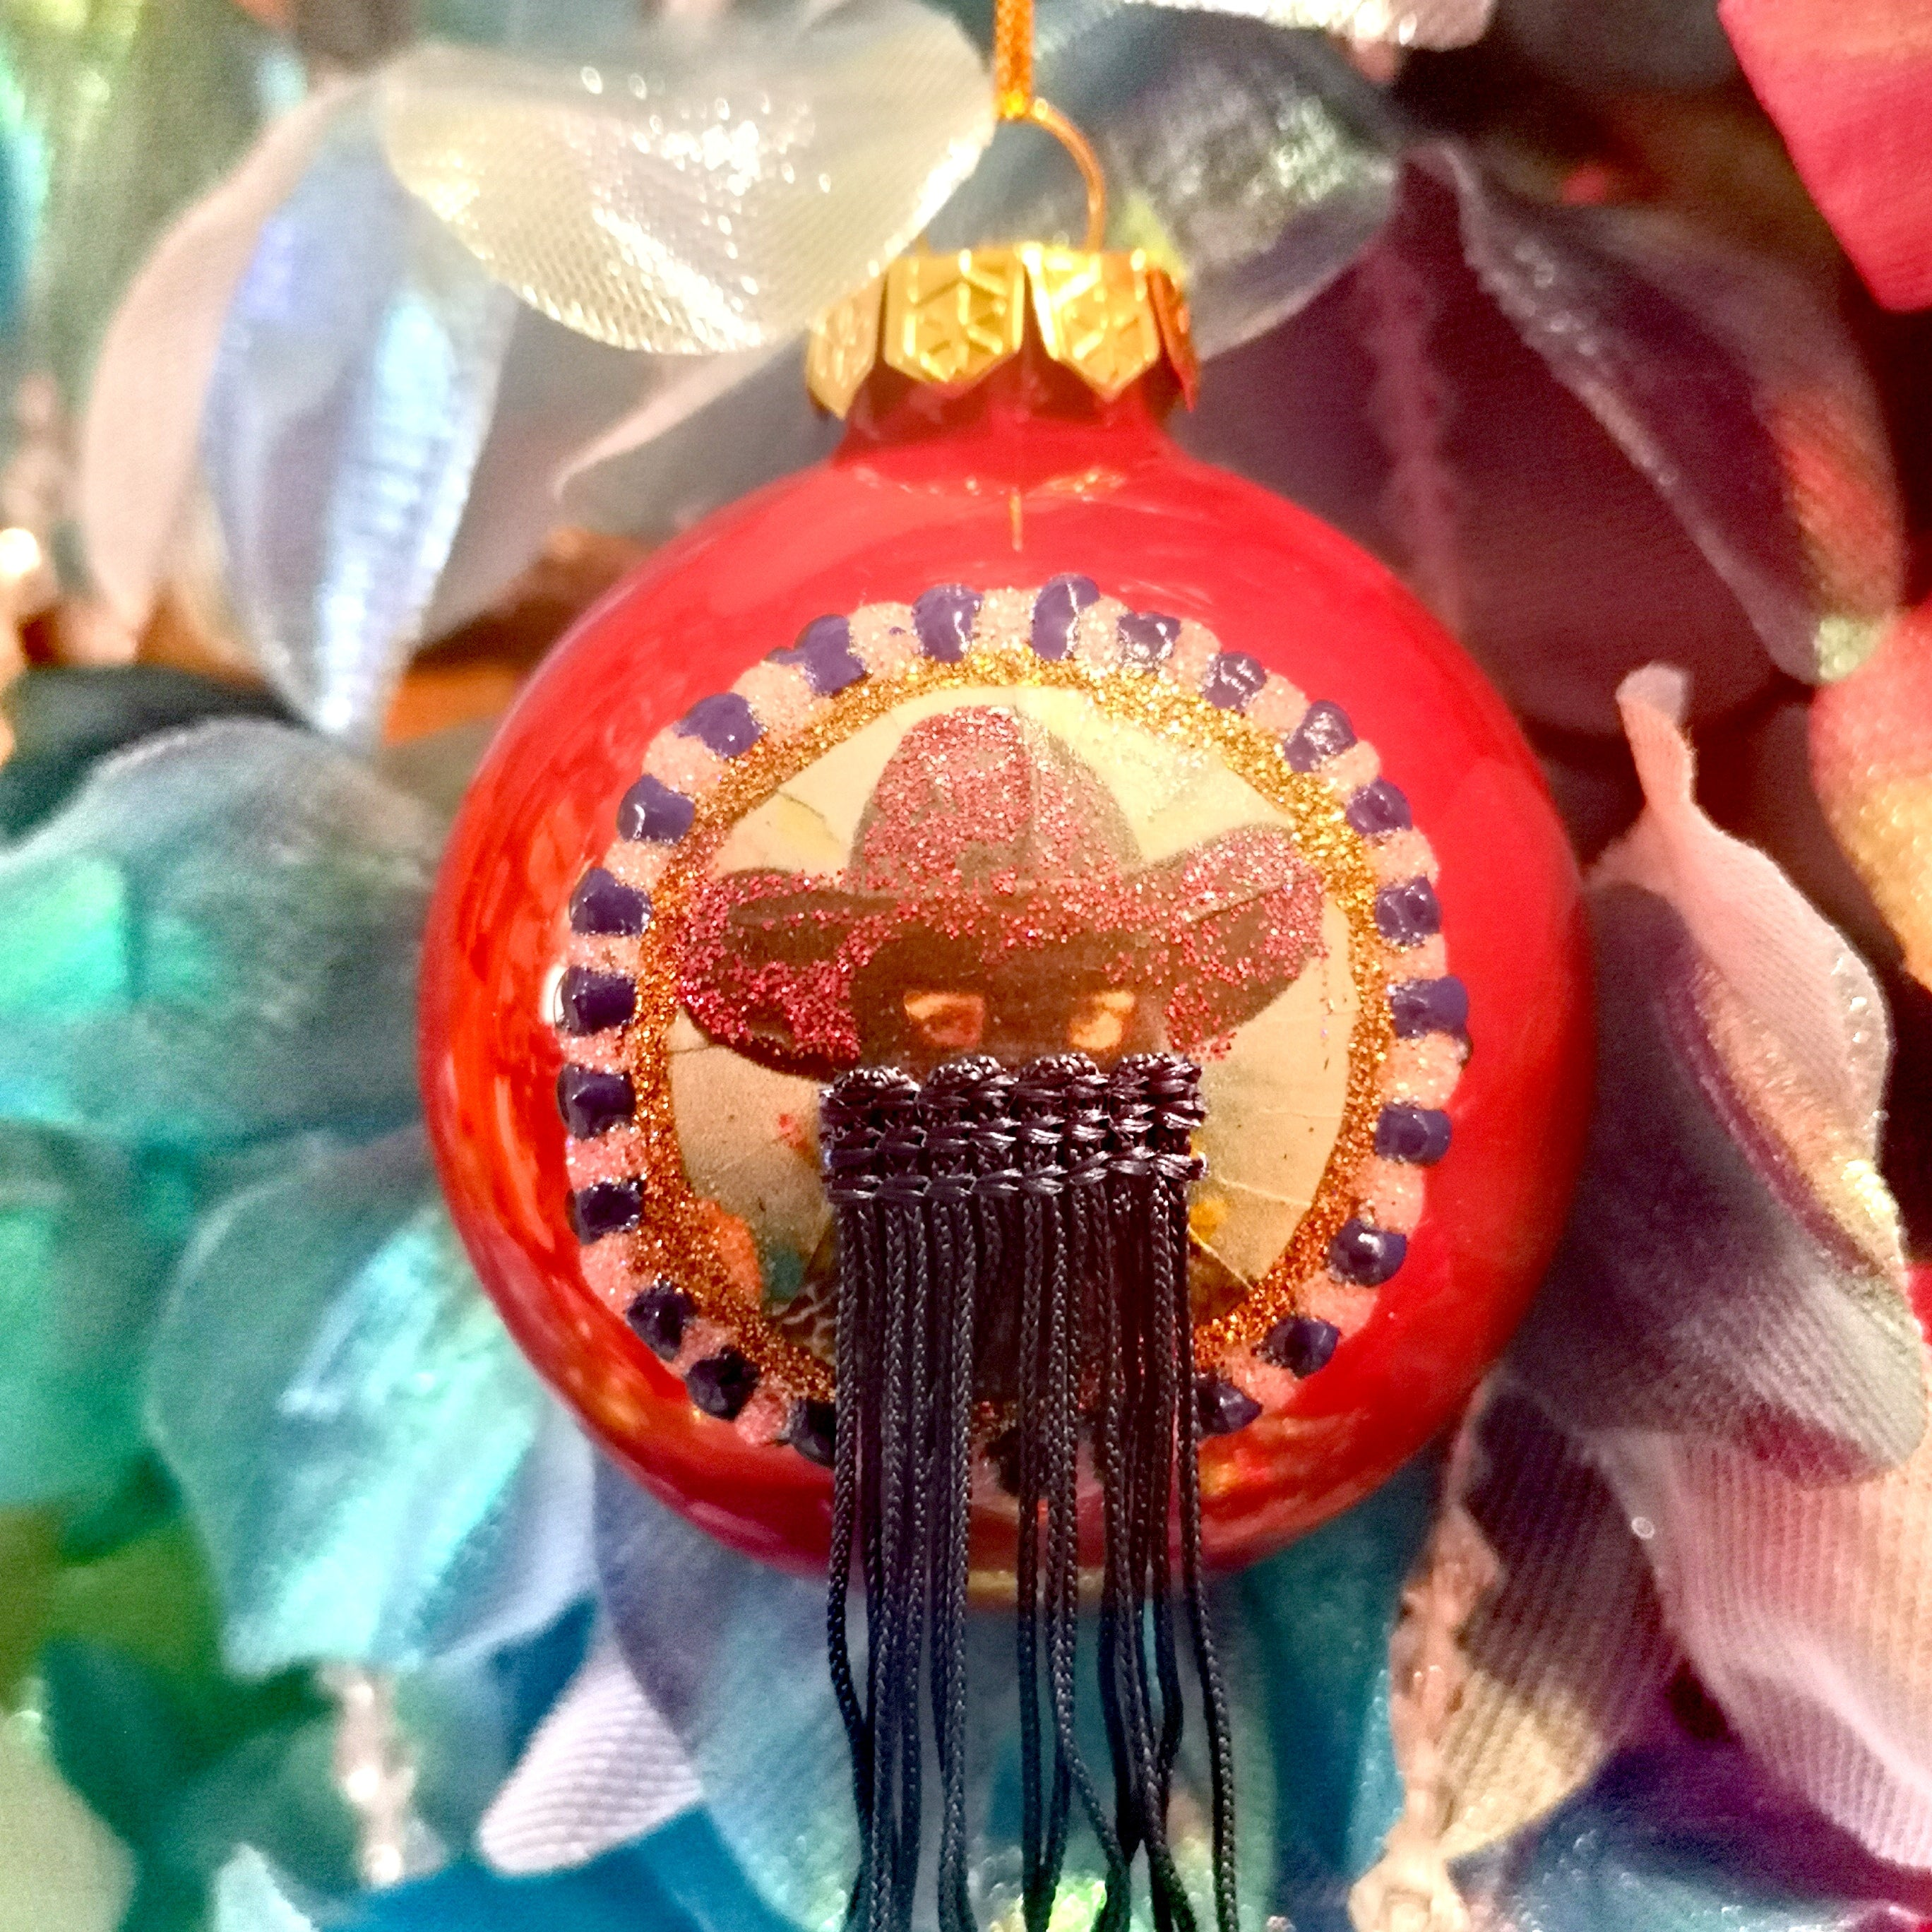 Orville peck glass baubles